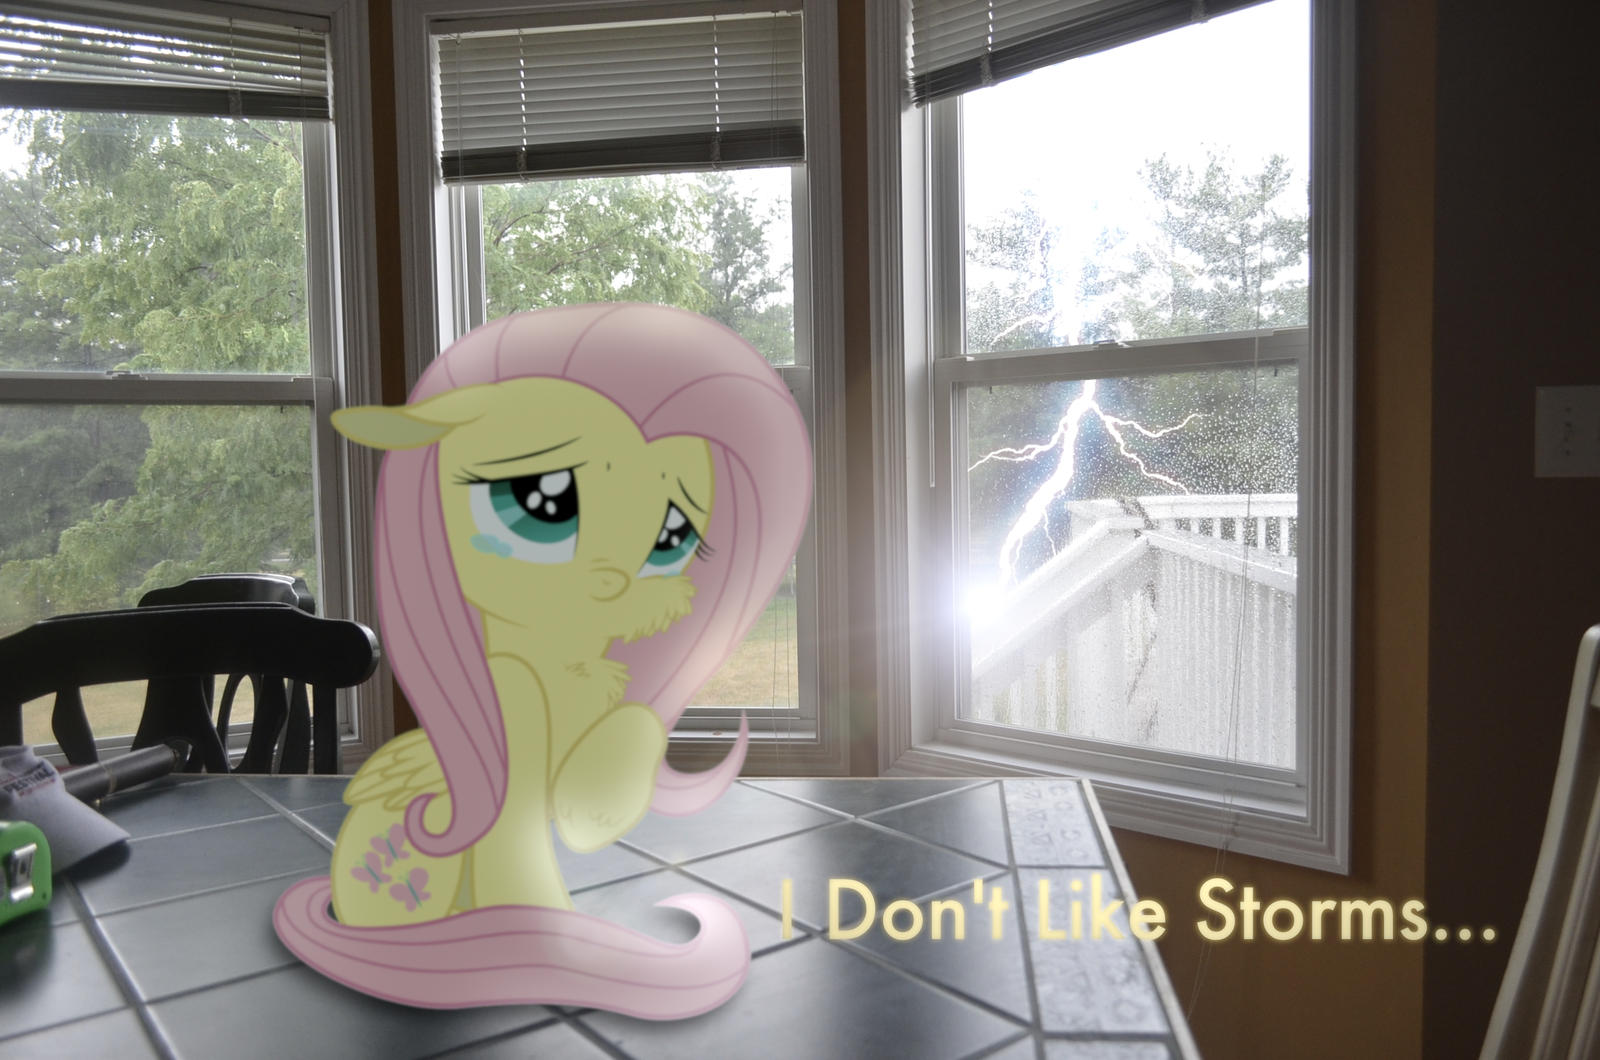 Storms by Oppositebros